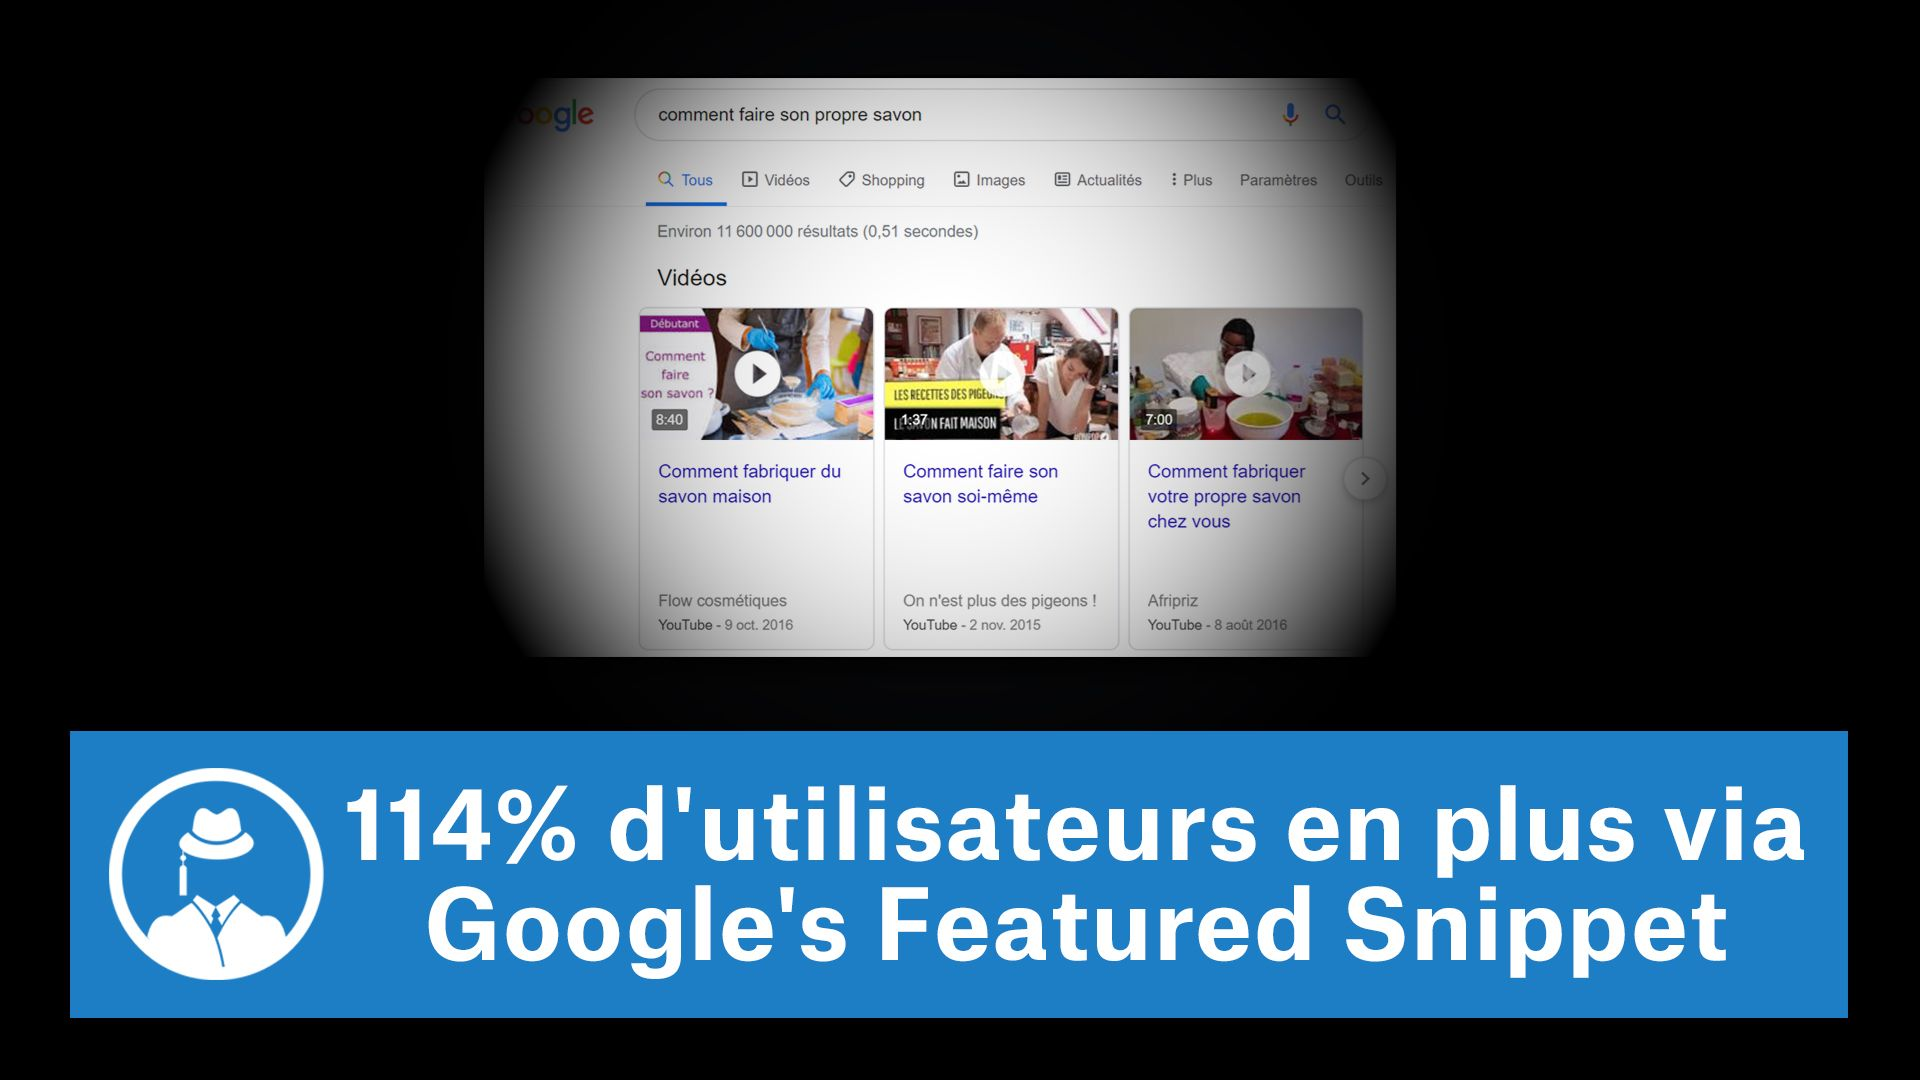 114% d'utilisateurs en plus via Google's Featured Snippet #GrowthHacking #WebMarketing #FormationGrowthHacking #CentreDeFormationFrance #TunnelAARRR #AARRR #SocialMedia #CommunityManagement #SEO #MarketingDigital #SiteWeb